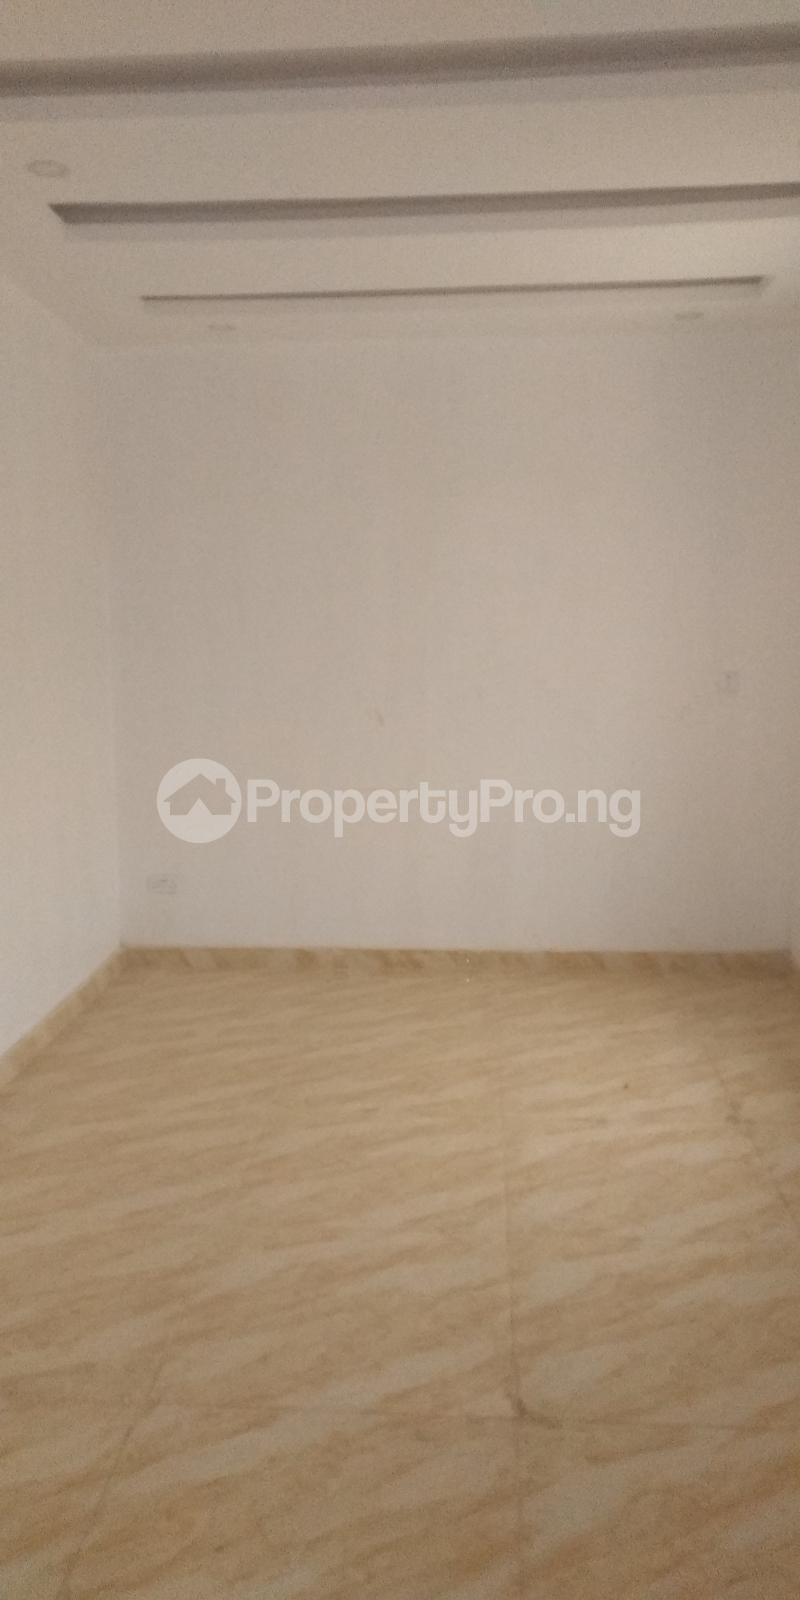 5 bedroom Flat / Apartment for sale Life Camp Abuja - 8